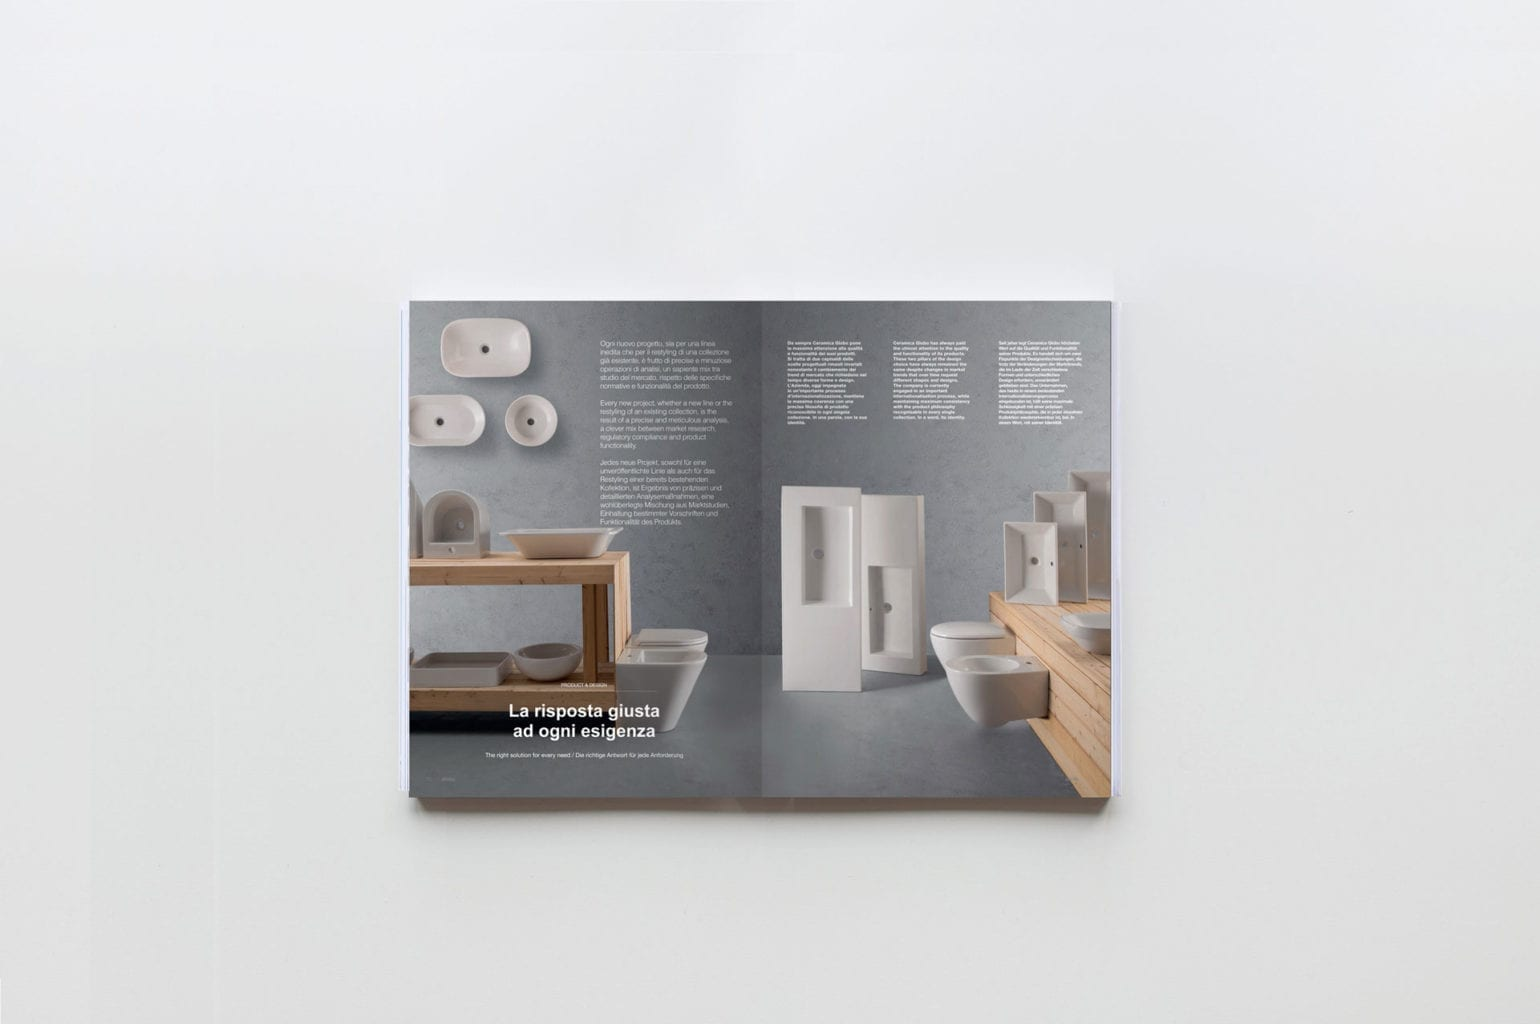 domenico_orefice_design_studio_graphic_branding_globo_general_catalogue_05